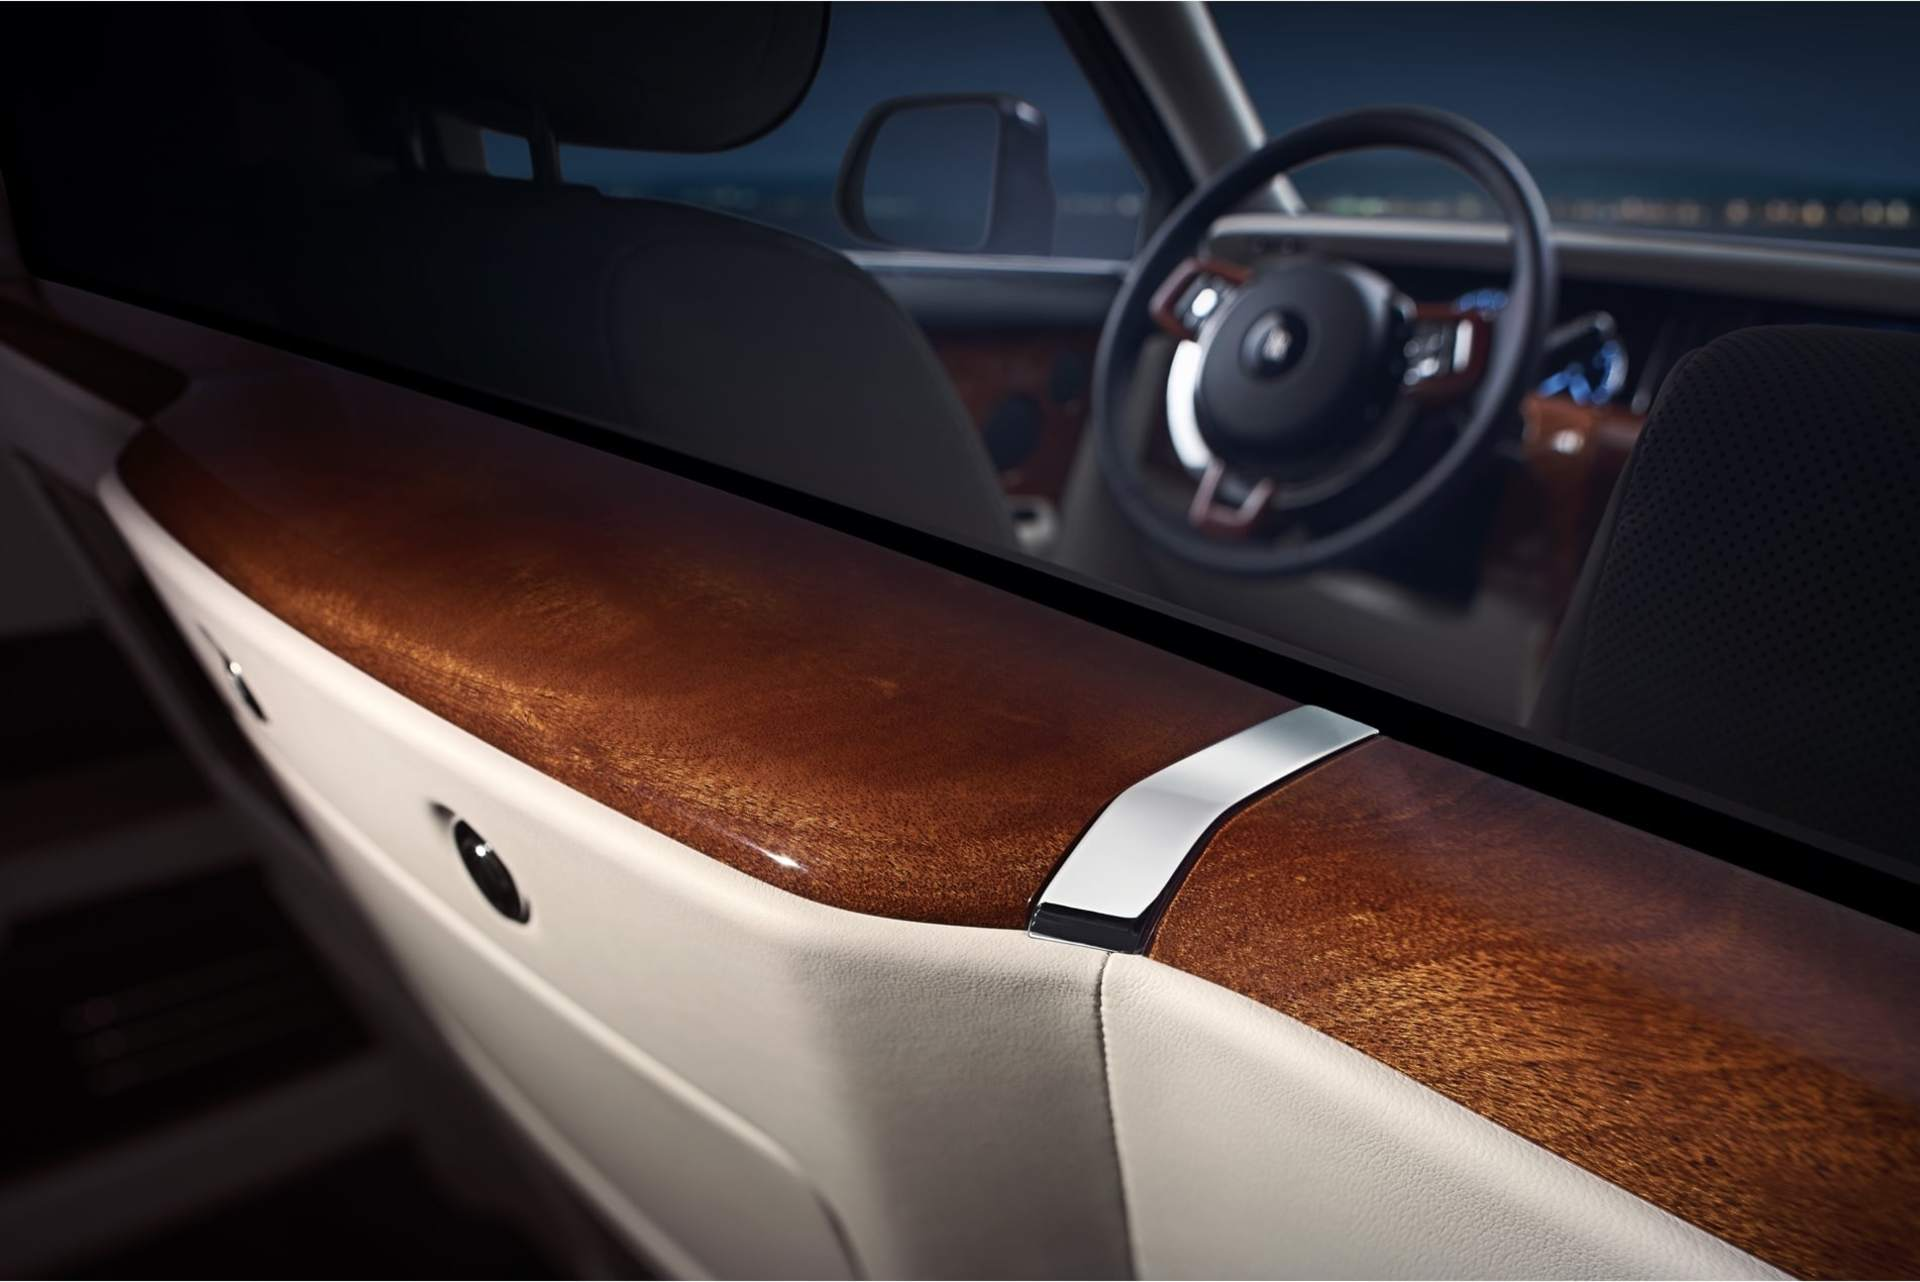 A close up on the wooden detailing and dashboard of the Rolls-Royce Phantom